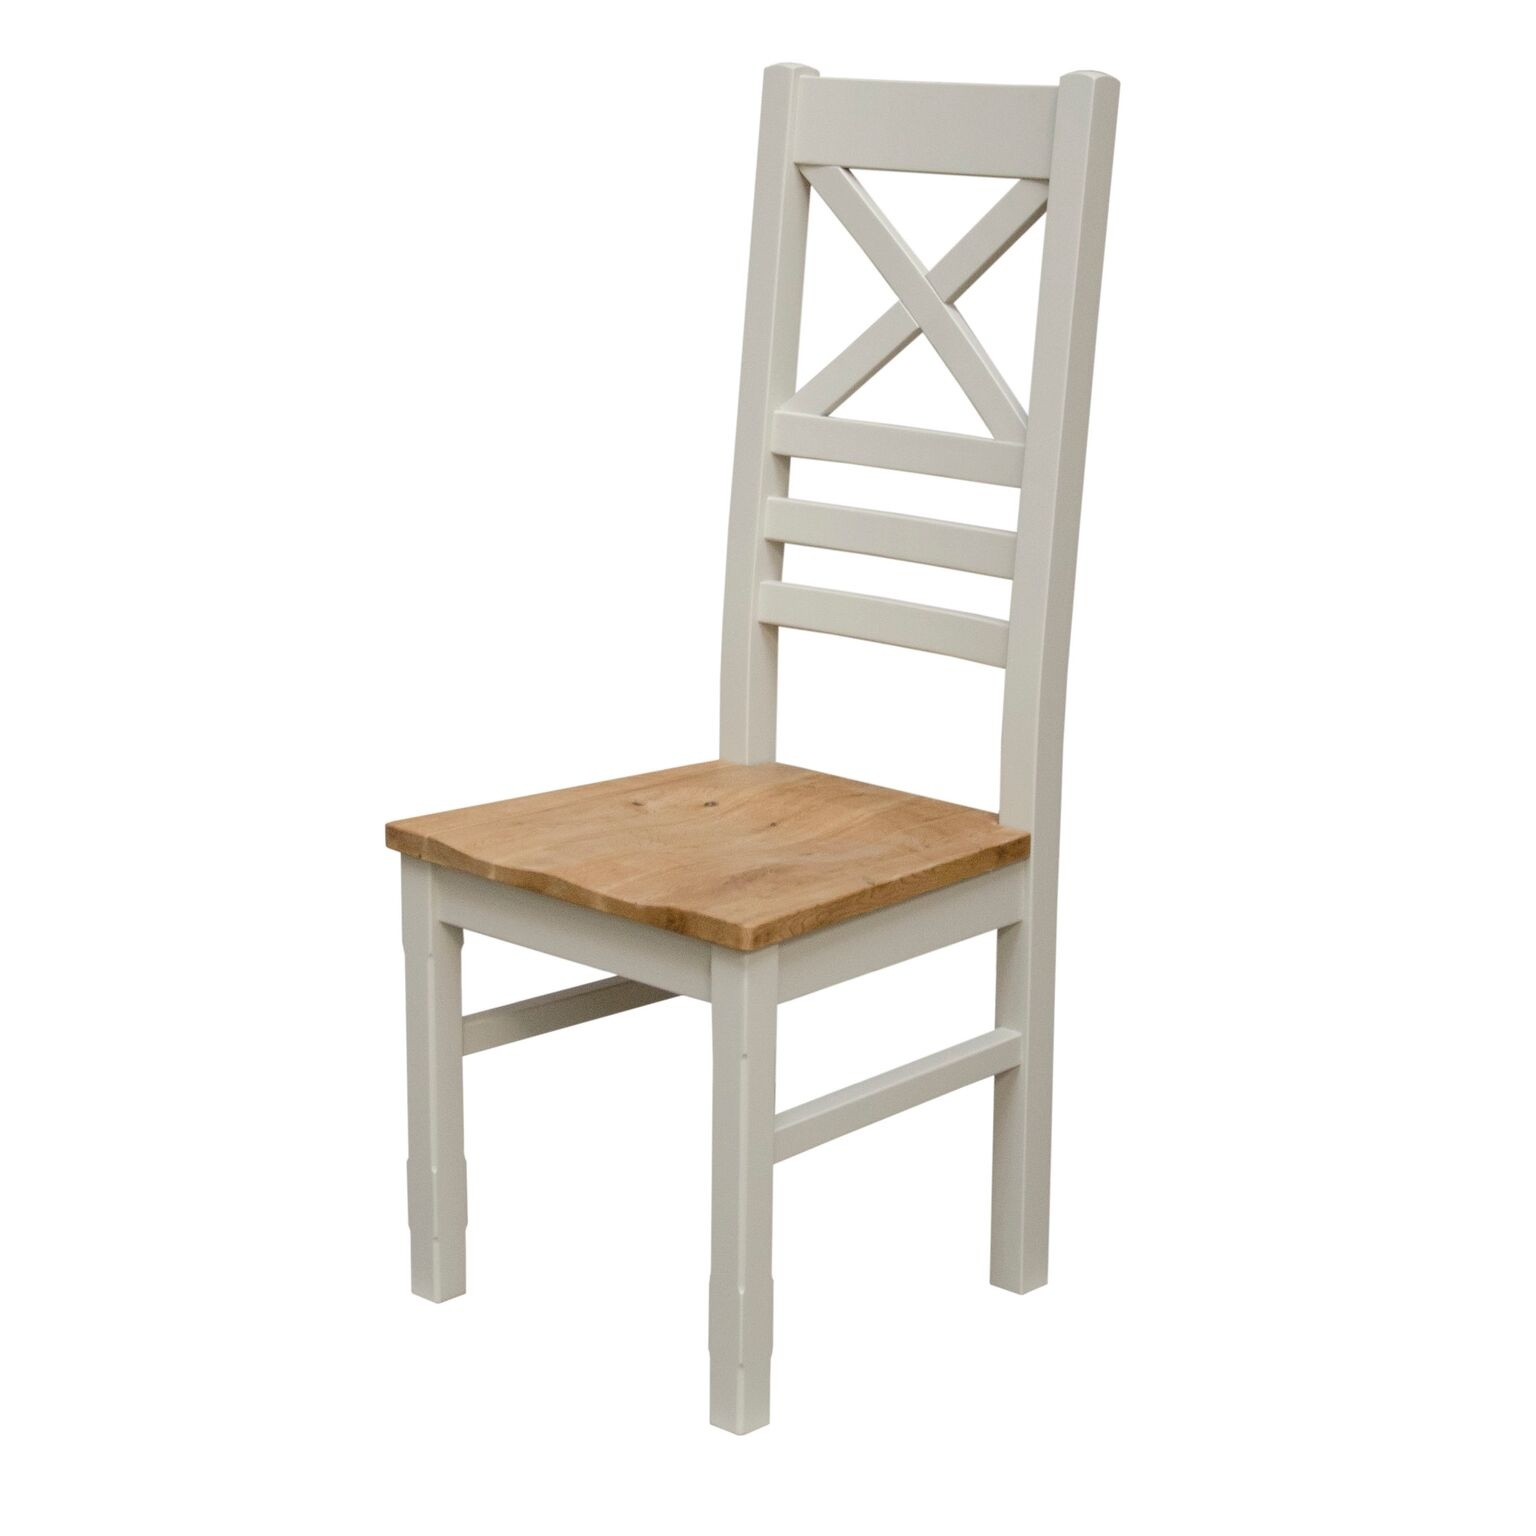 HomestyleGB Painted Deluxe Newcross Back Dining Chair